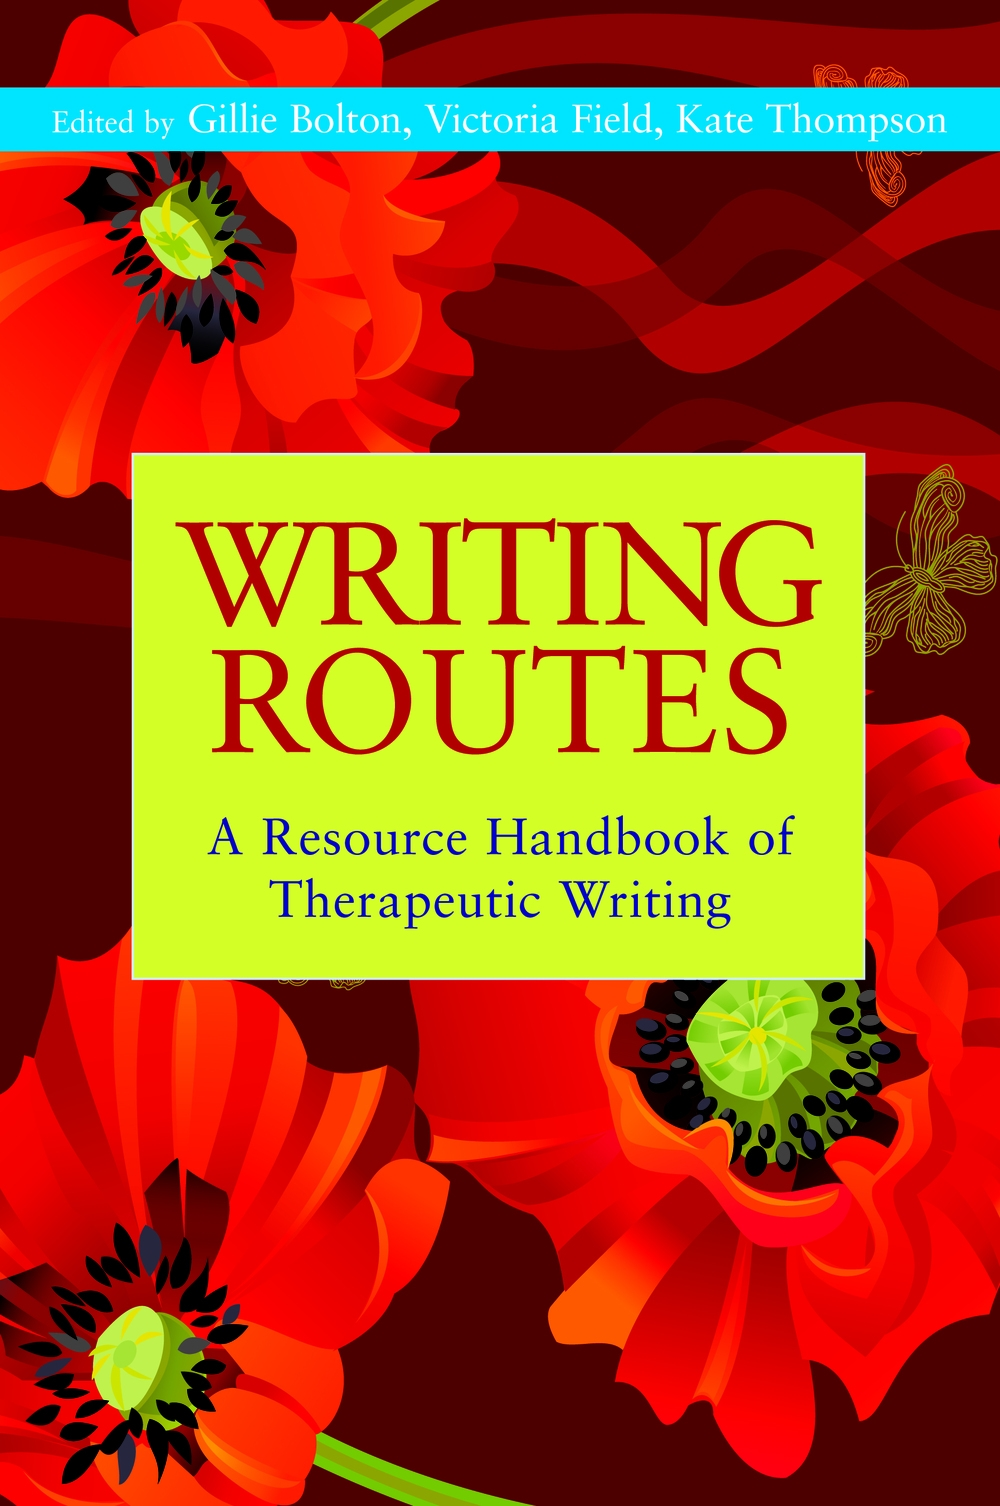 9781849051071 - Writing Routes.jpg